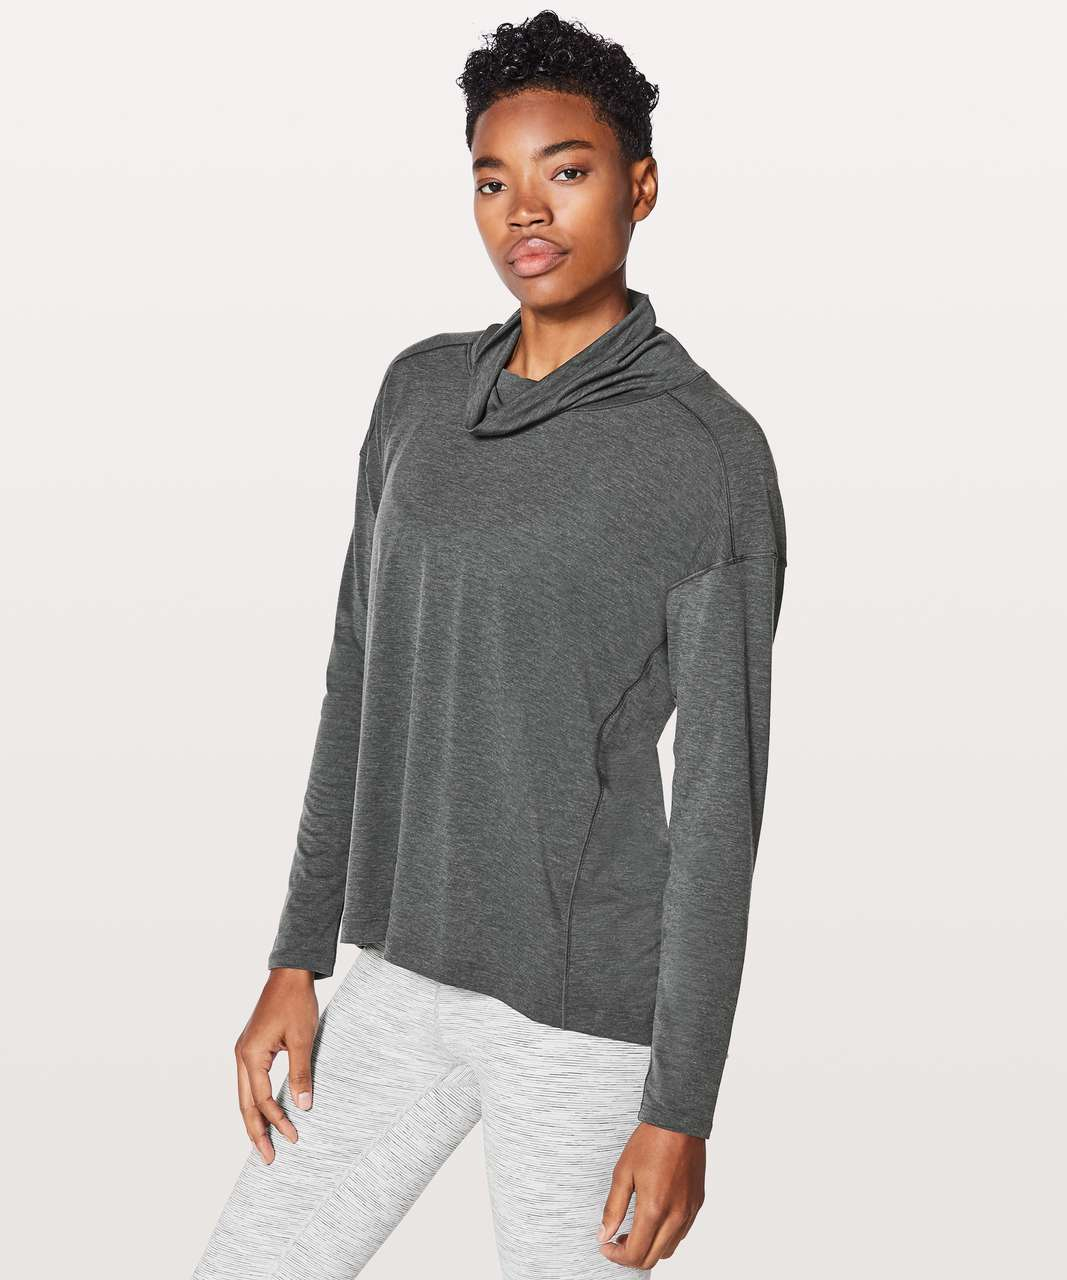 Lululemon See You In Savasana Long Sleeve - Heathered Deep Coal